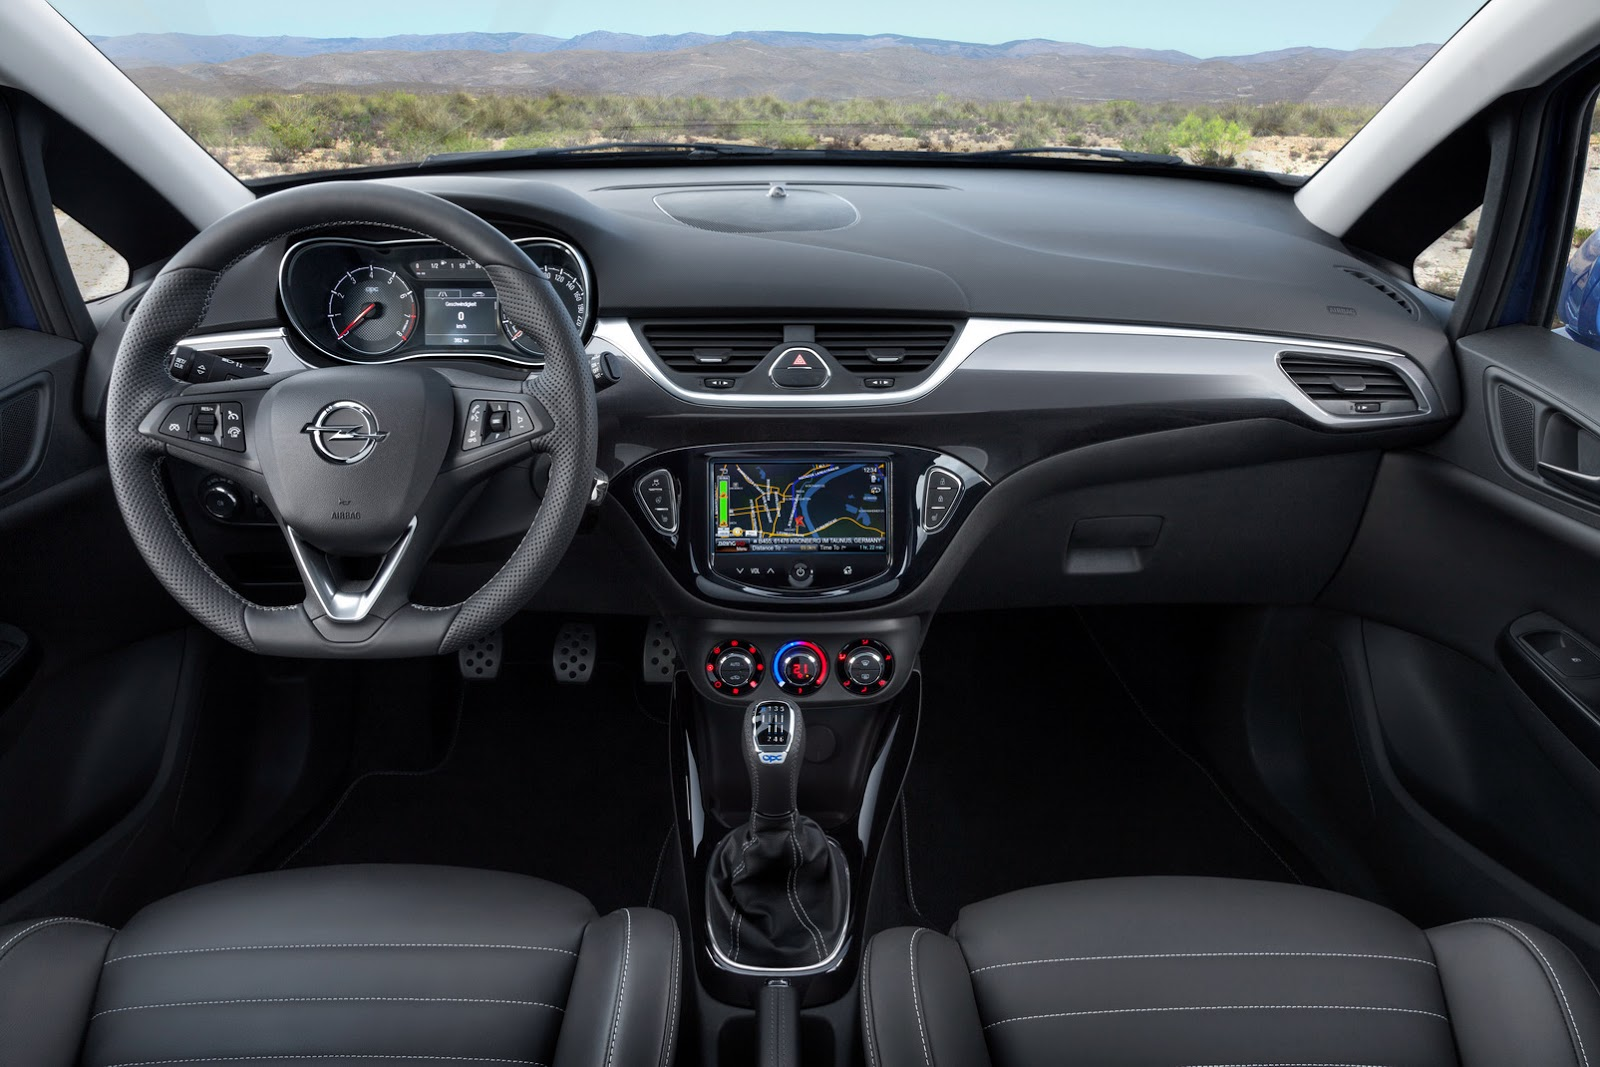 New Photos of Opel Corsa OPC Expose Interior | Carscoops